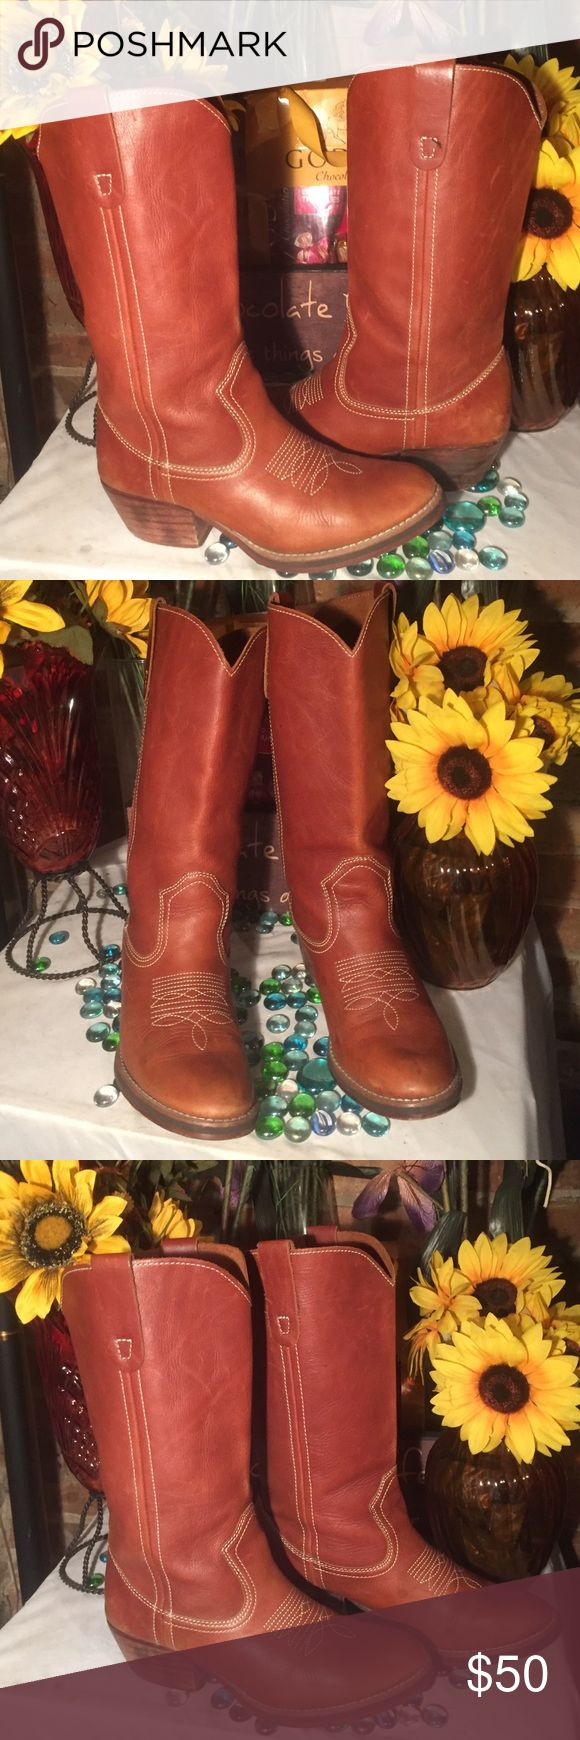 🎈🎉2 Hour SALE🎈🎉Steve Madden Boots Madden Boots- Sz 8- Good condition- Minor wear on heels- Genuine tan leather- 1.5' heel- 15' circumference- Very nice boots! 👠Sale Price FIRM!👠 Steve Madden Shoes Combat & Moto Boots